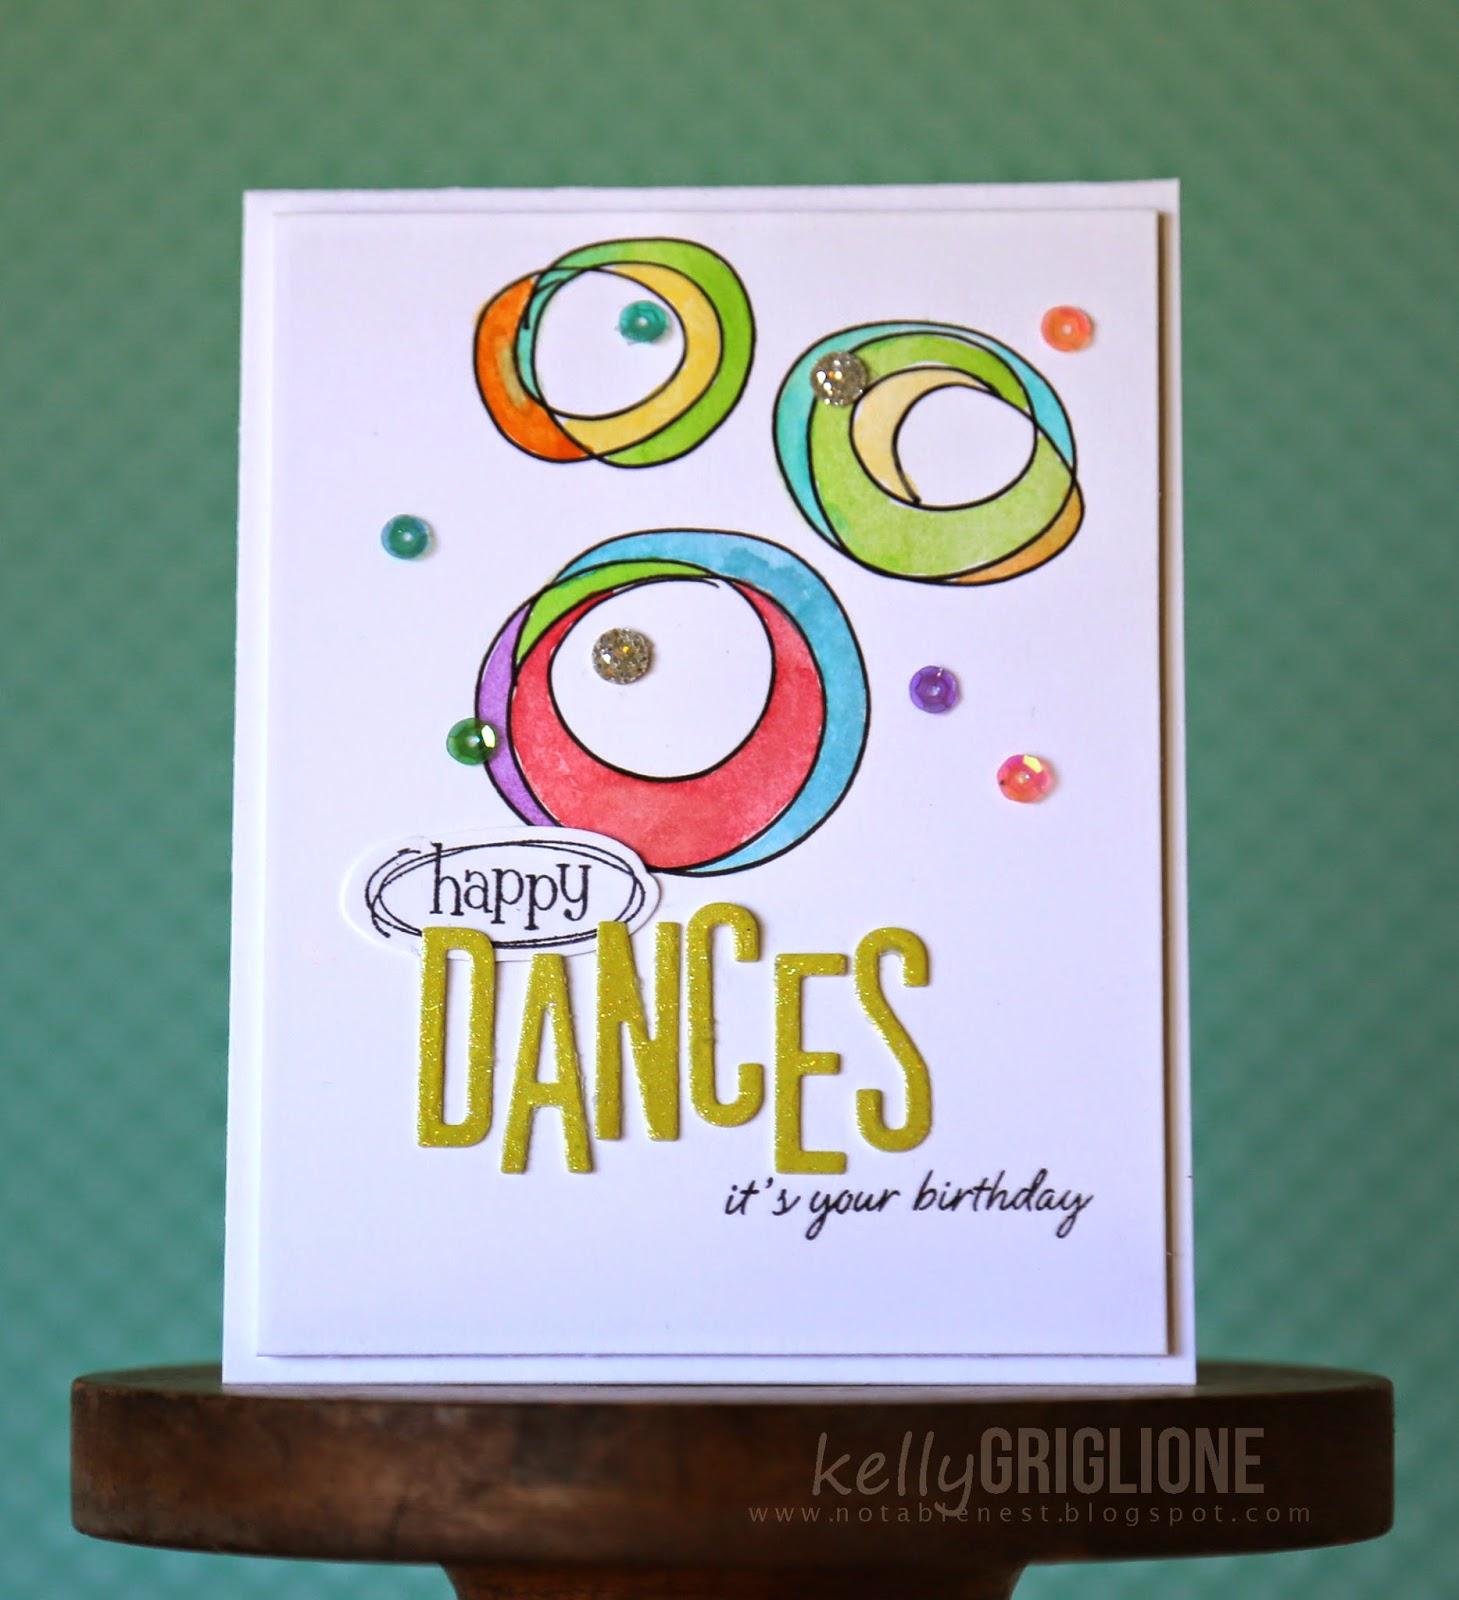 http://notablenest.blogspot.com/2014/09/my-new-favorite-birthday-card-happy.html